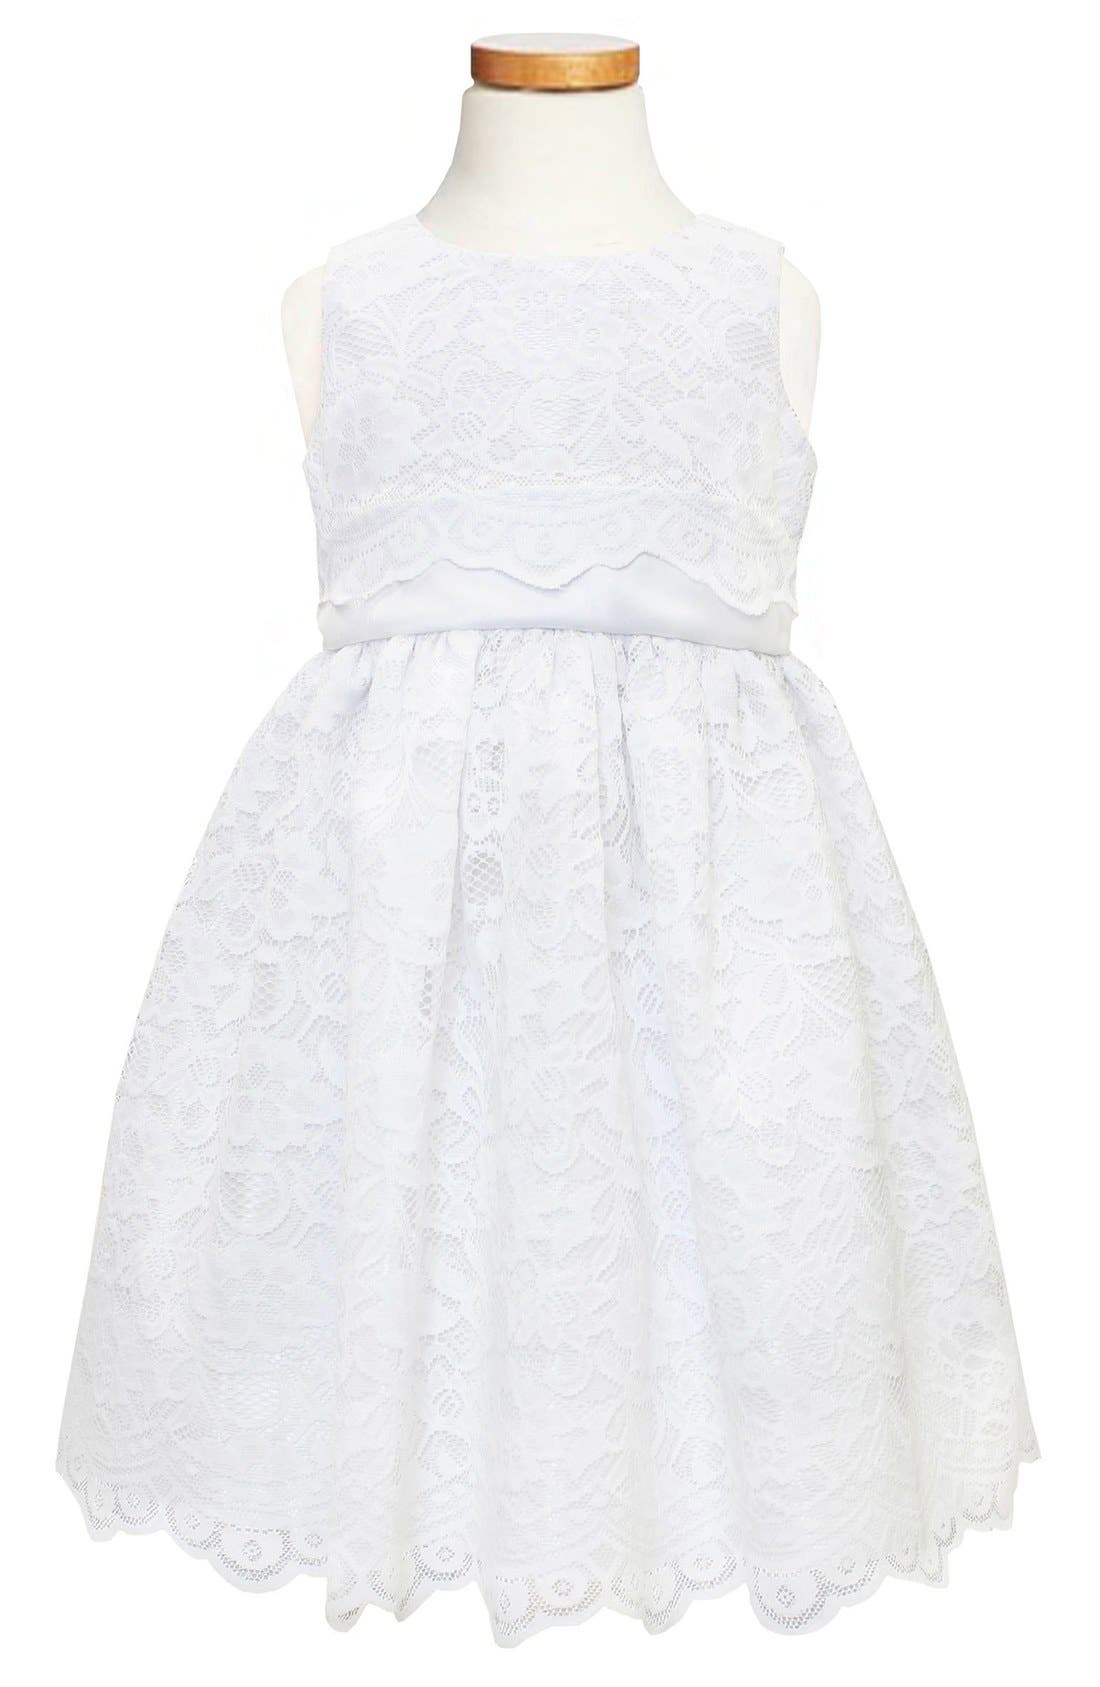 Sorbet Scallop Lace Dress (Toddler Girls & Little Girls)